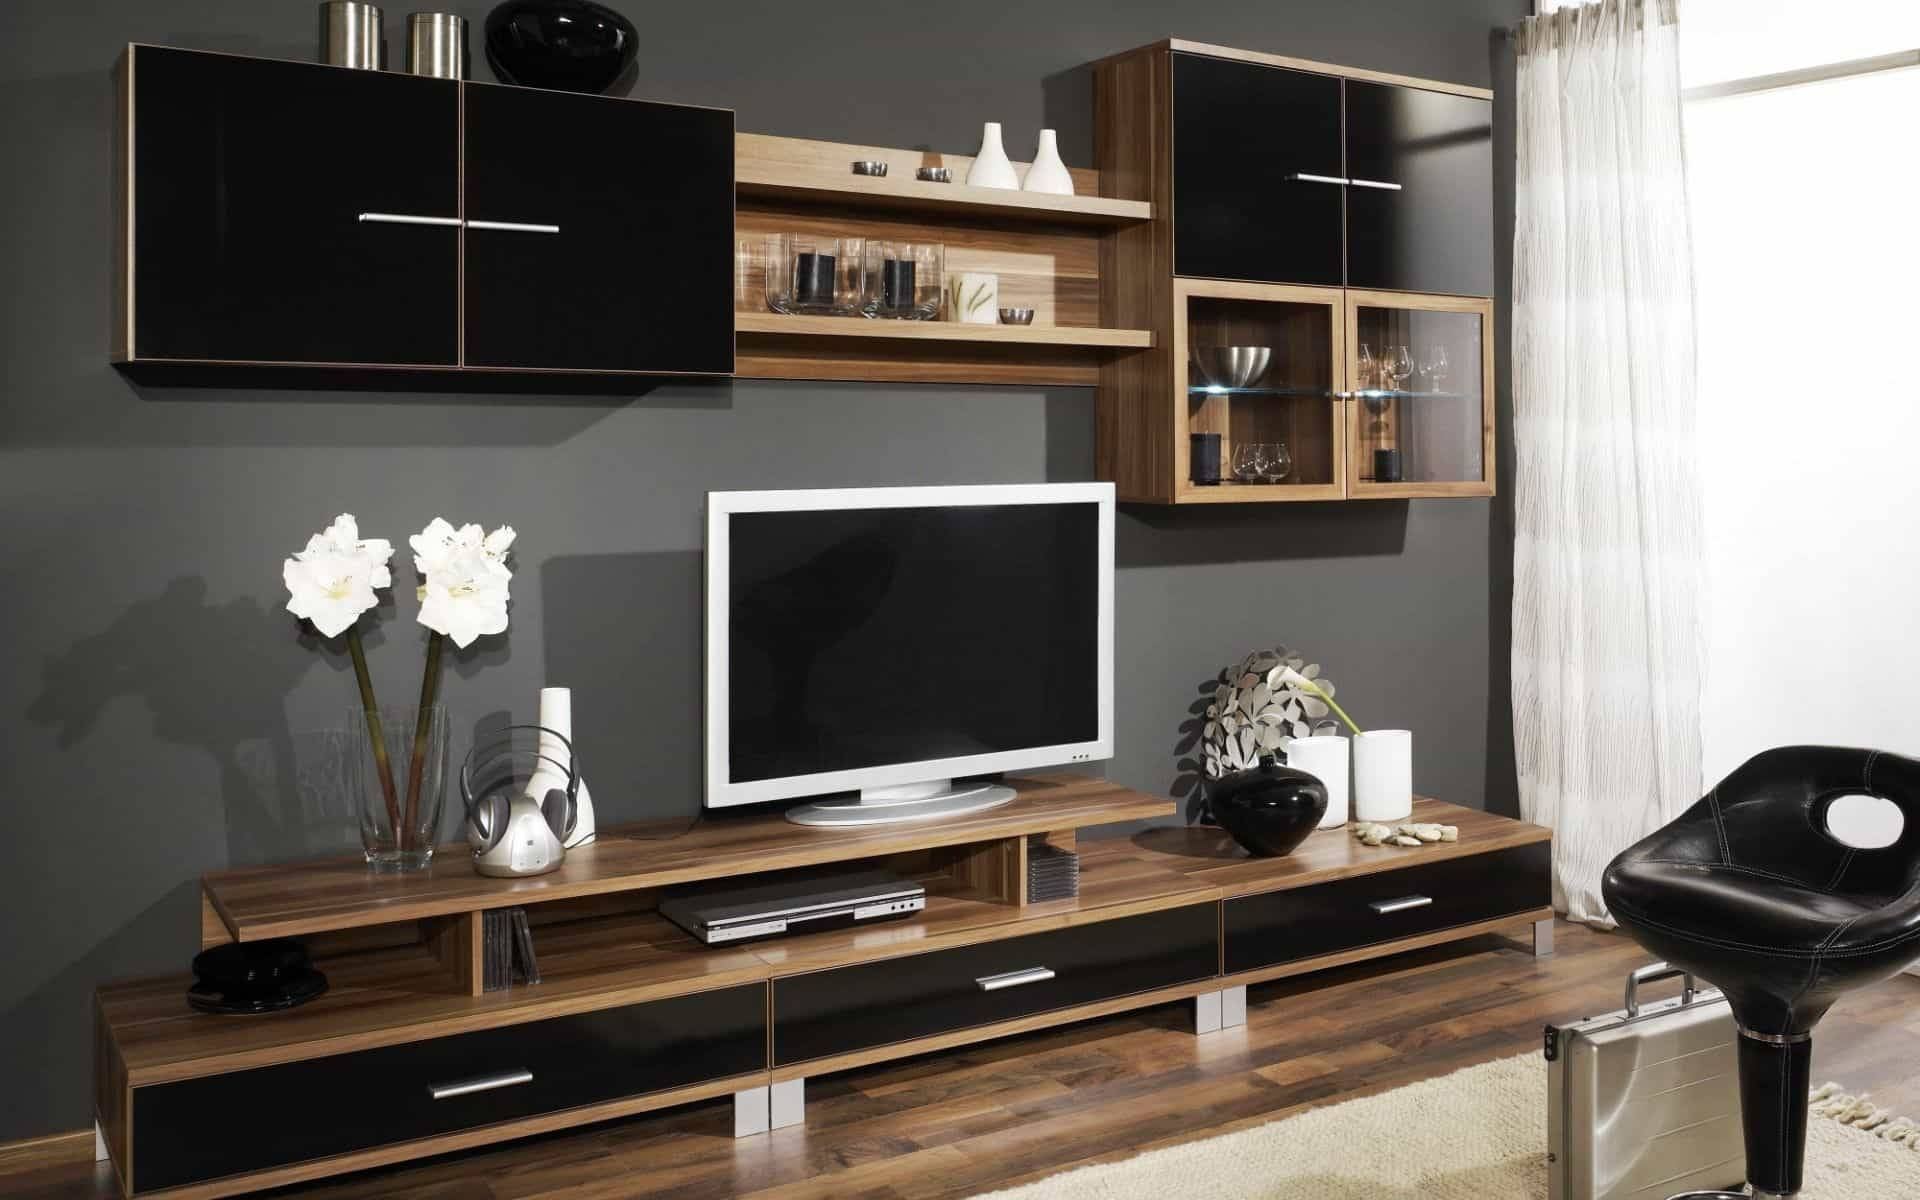 Modern Tv Stand With Bottom Drawers – Useful And Stylish Tv Stand Intended For Stylish Tv Stands (View 4 of 15)